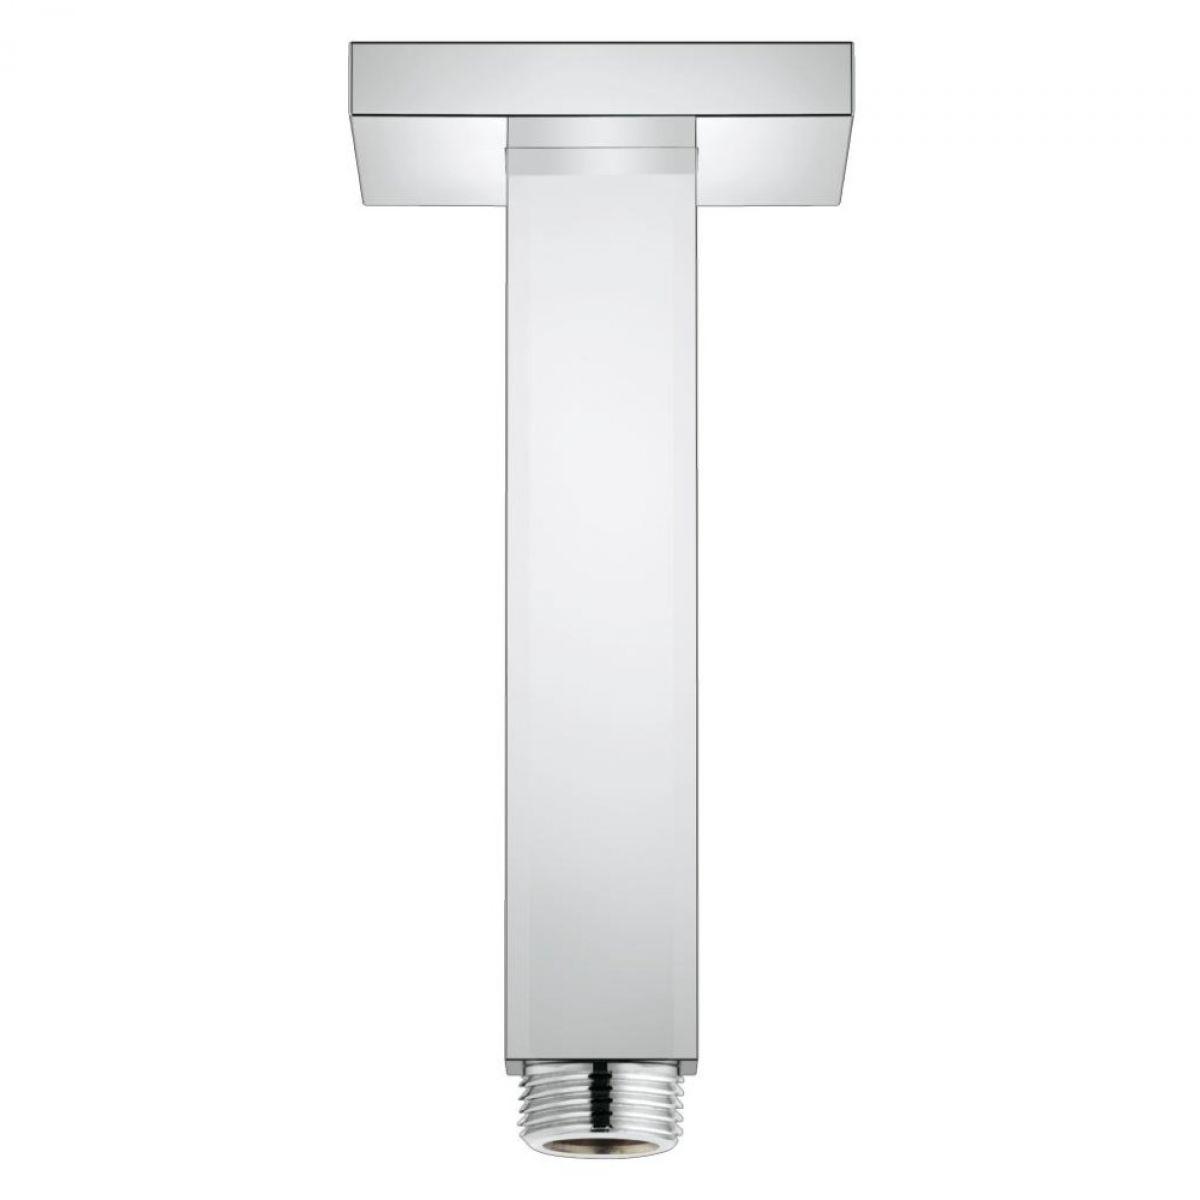 grohe euphoria cube 150 shower head uk bathrooms. Black Bedroom Furniture Sets. Home Design Ideas